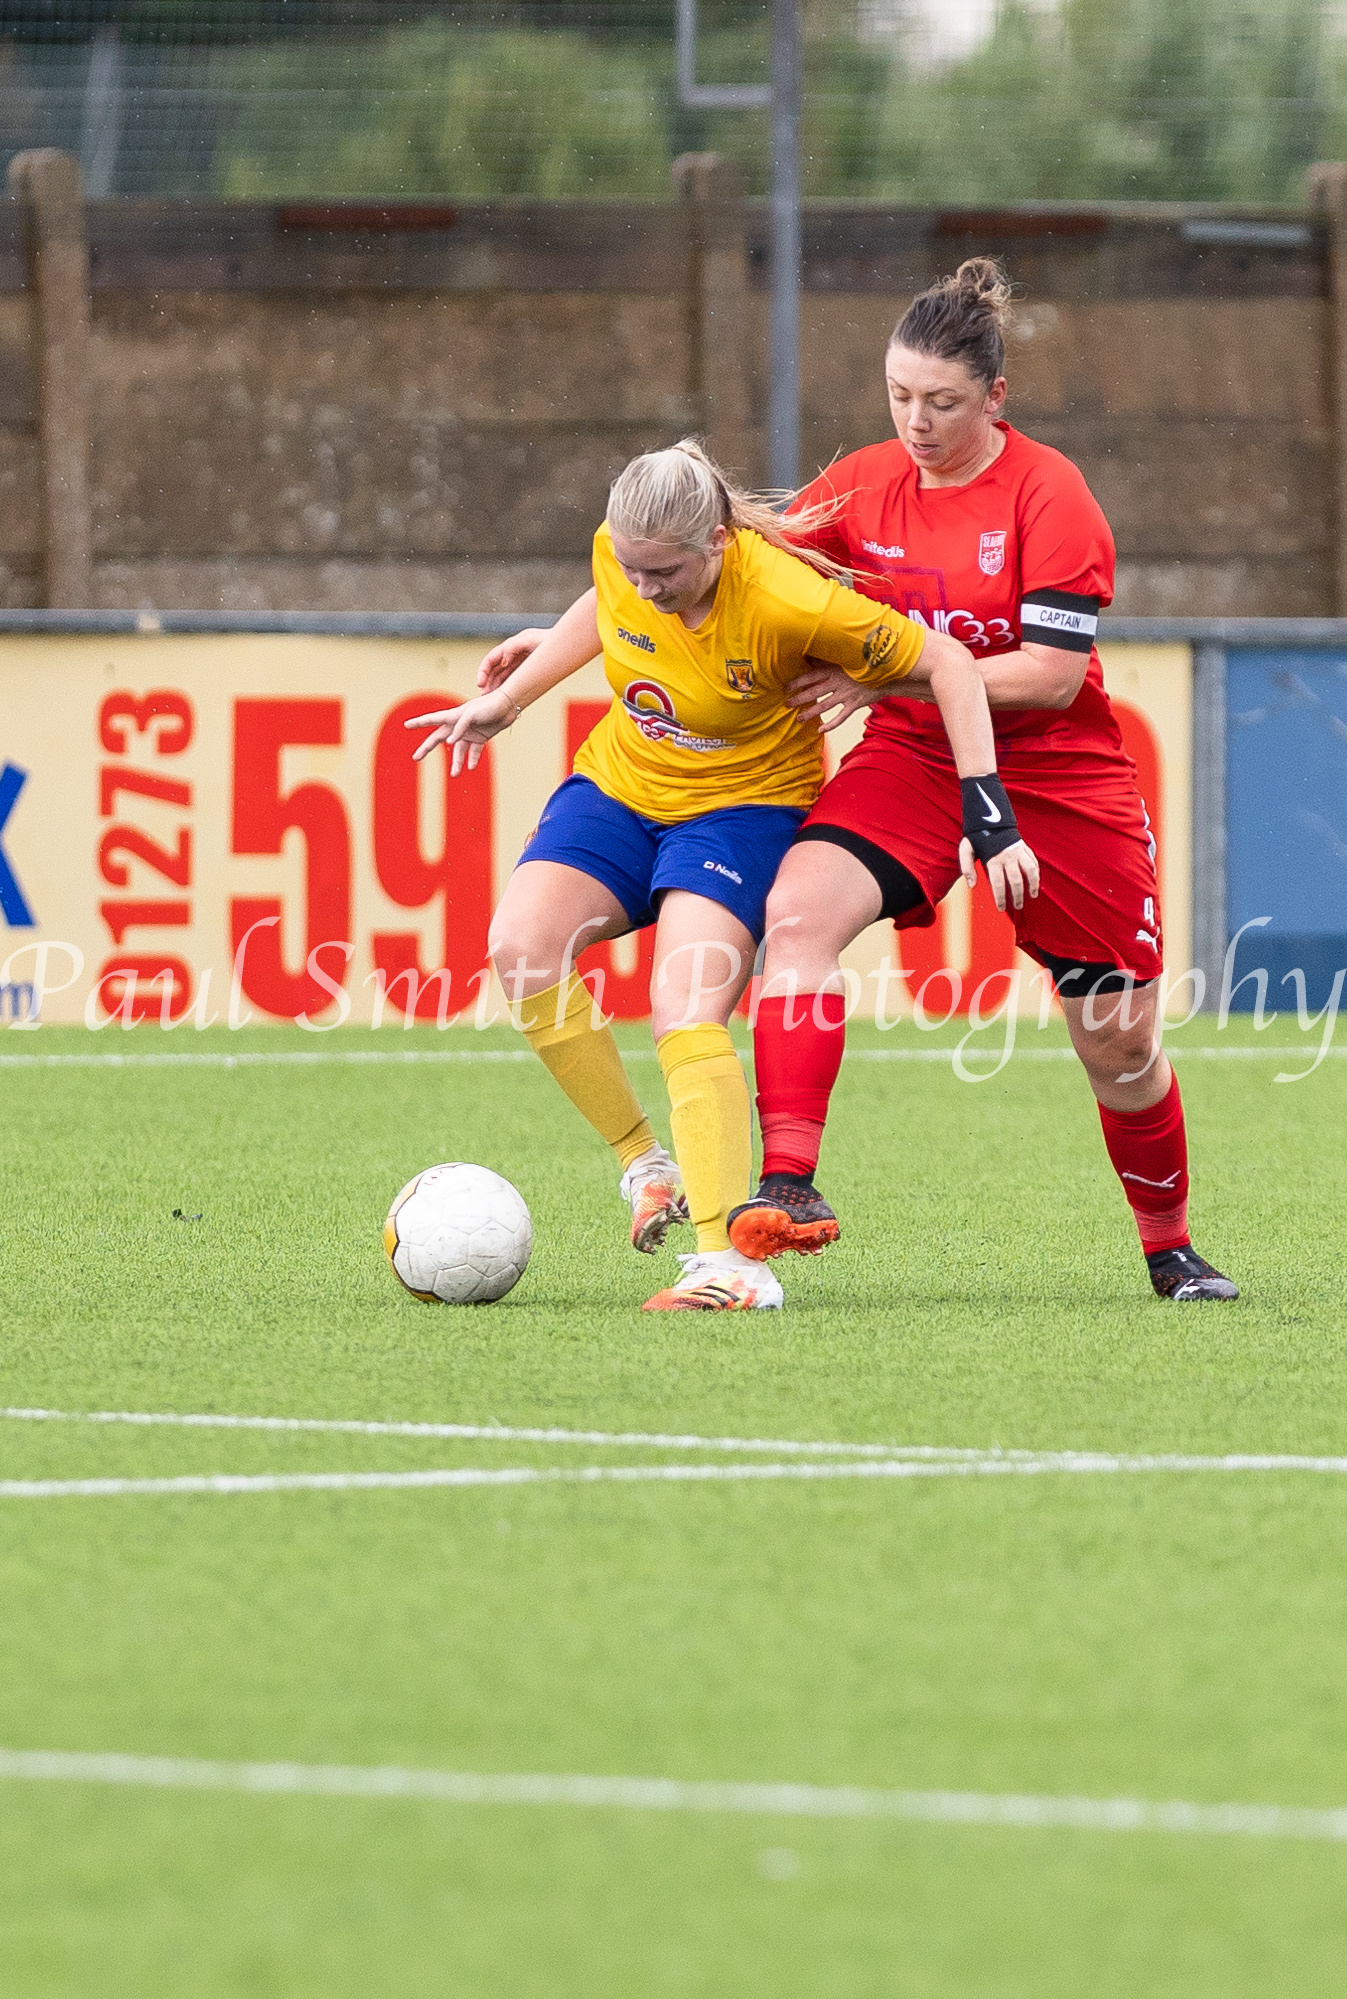 Gallery: Lancing 0 Seaford Town 0 (Seaford Town win on penalties)